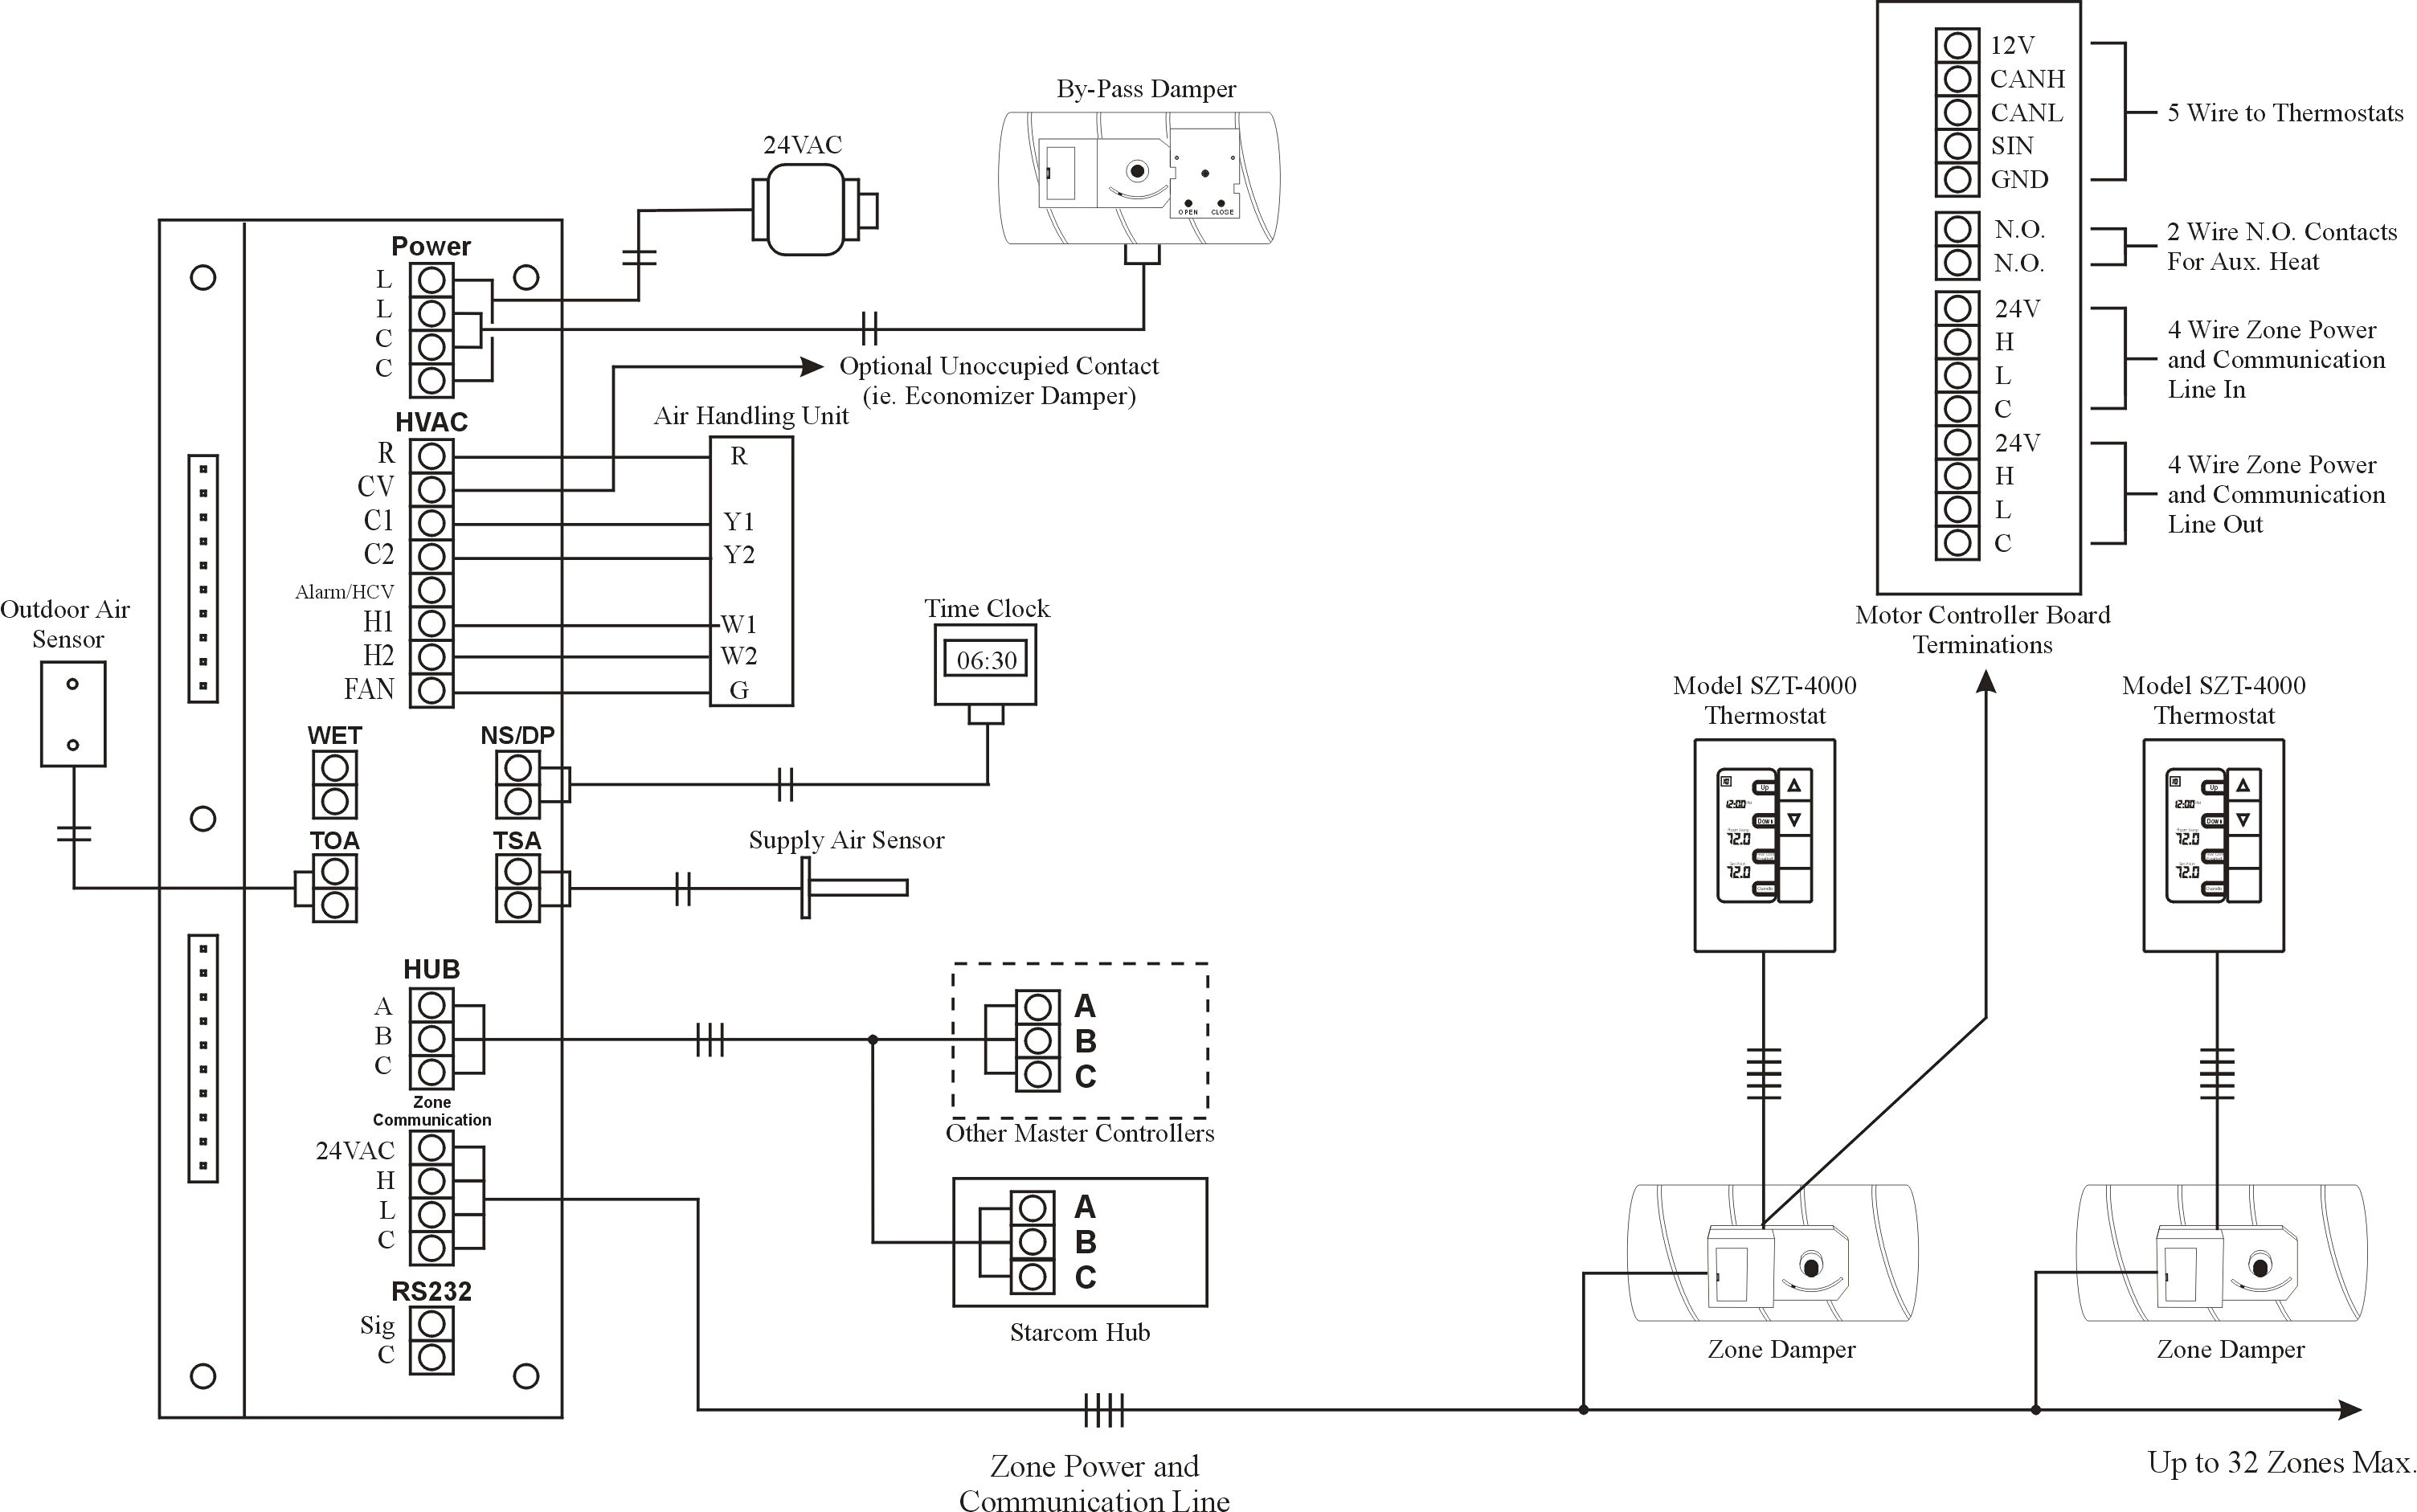 fire alarm control panel wiring diagram Download-Wiring Diagram for A Fire Alarm System Inspirationa Wiring Diagram for Heating System New Fire Alarm 19-n